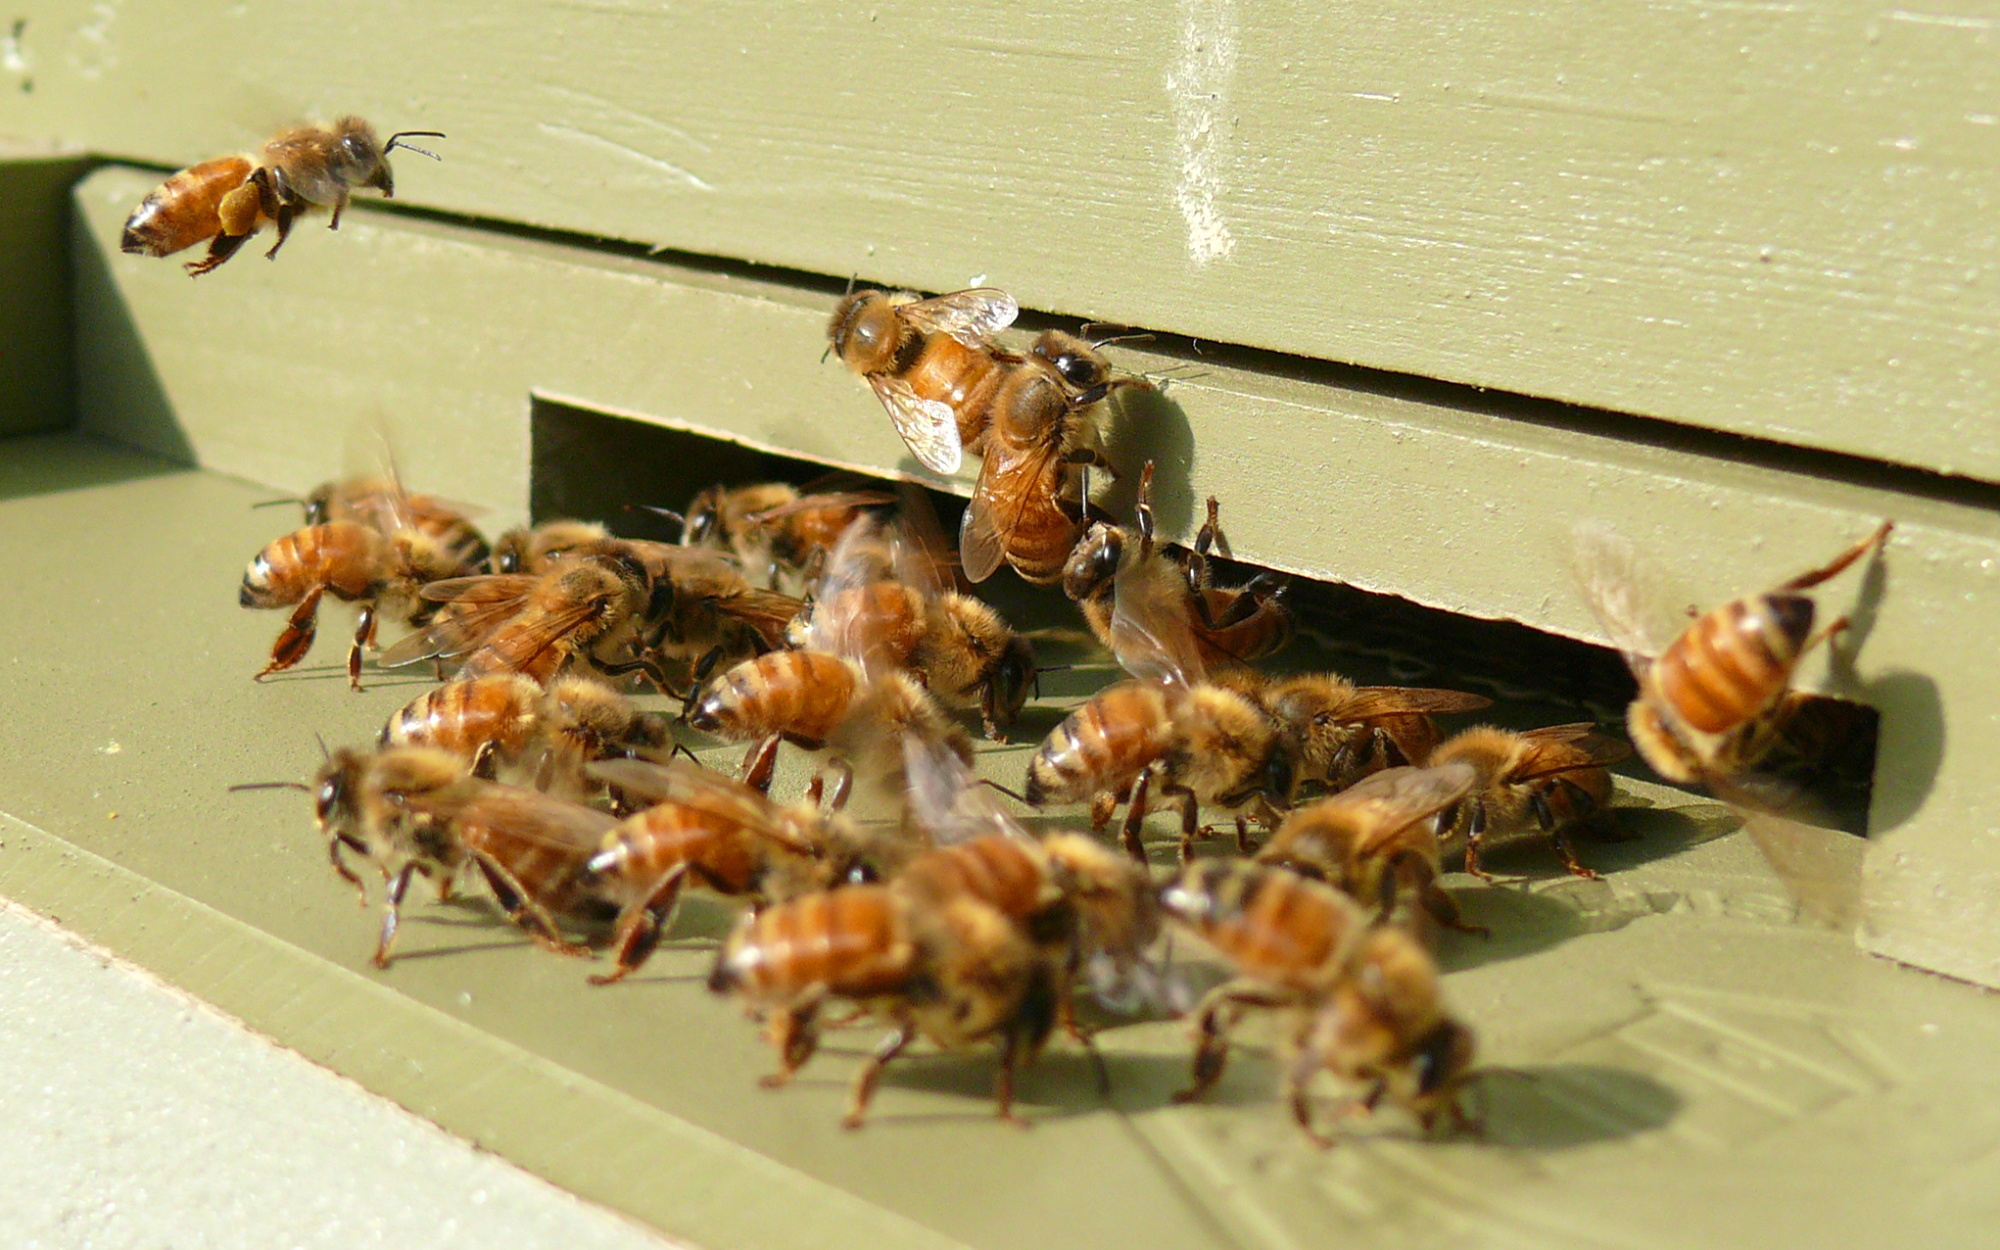 https://upload.wikimedia.org/wikipedia/commons/7/7a/Honeybees-27527-2.jpg